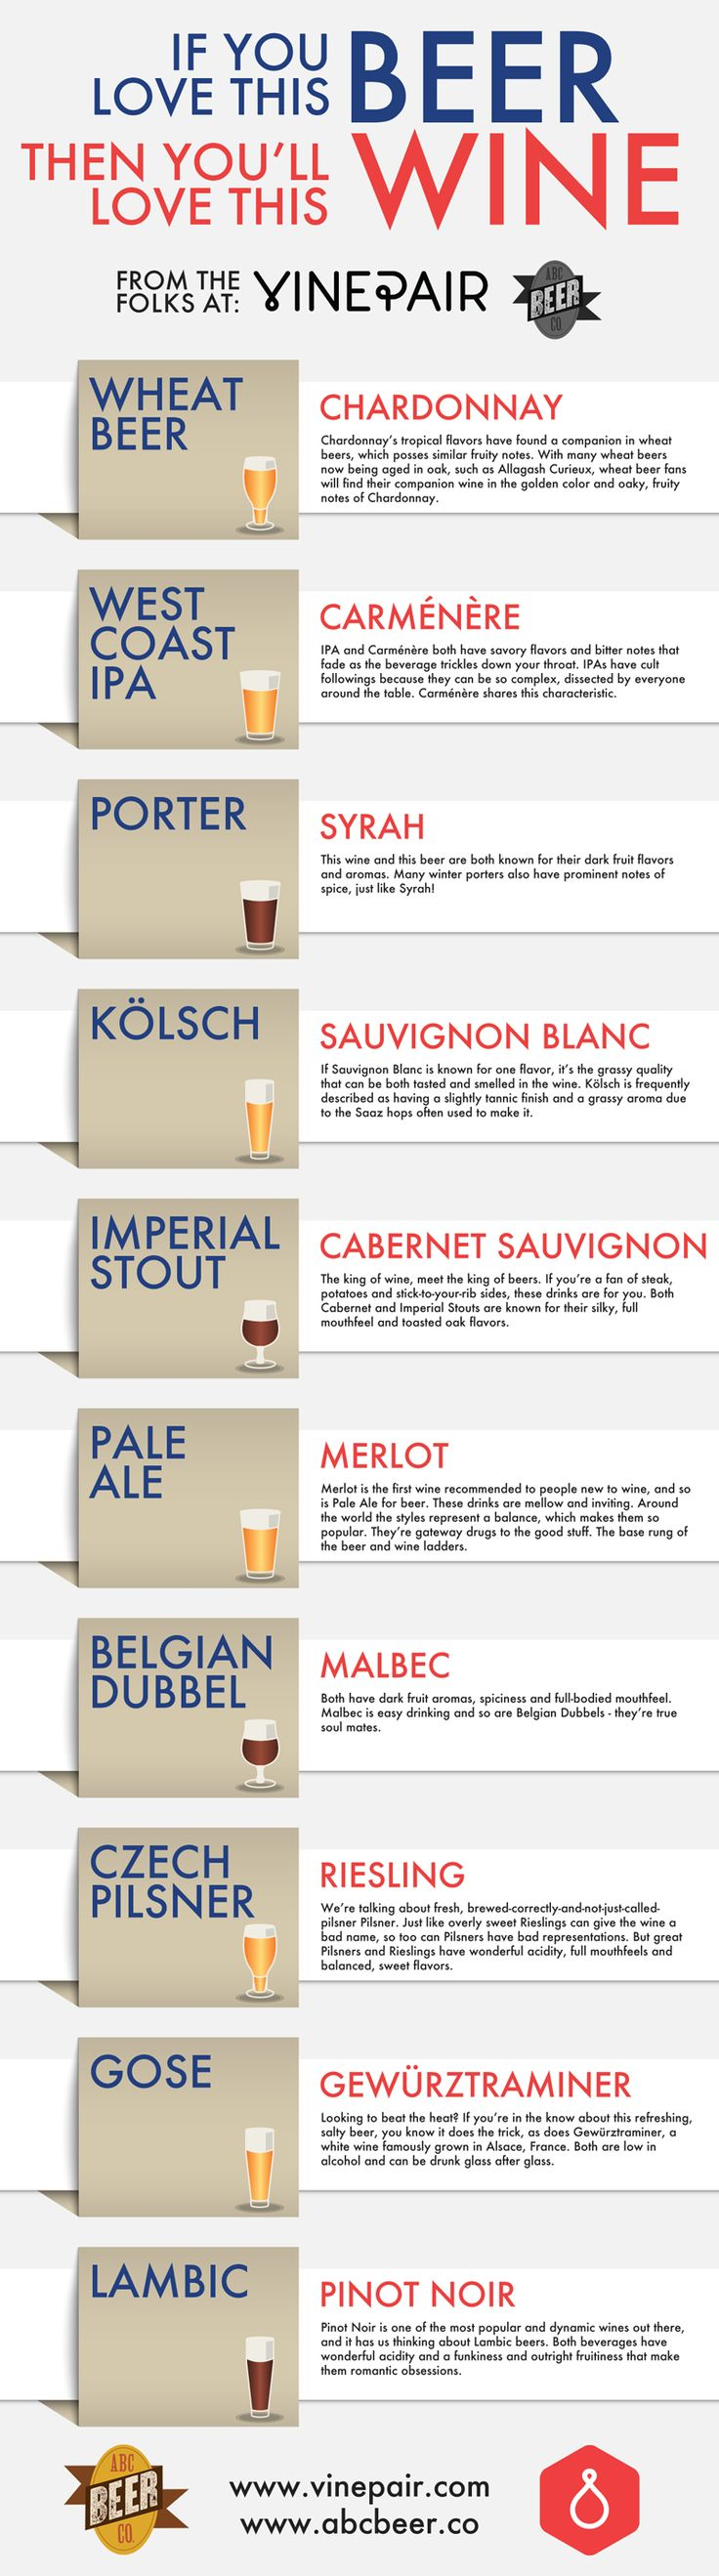 If You Love This Beer Then You'll Love This Wine, Comparable Beer and Wine Pairing Infographic